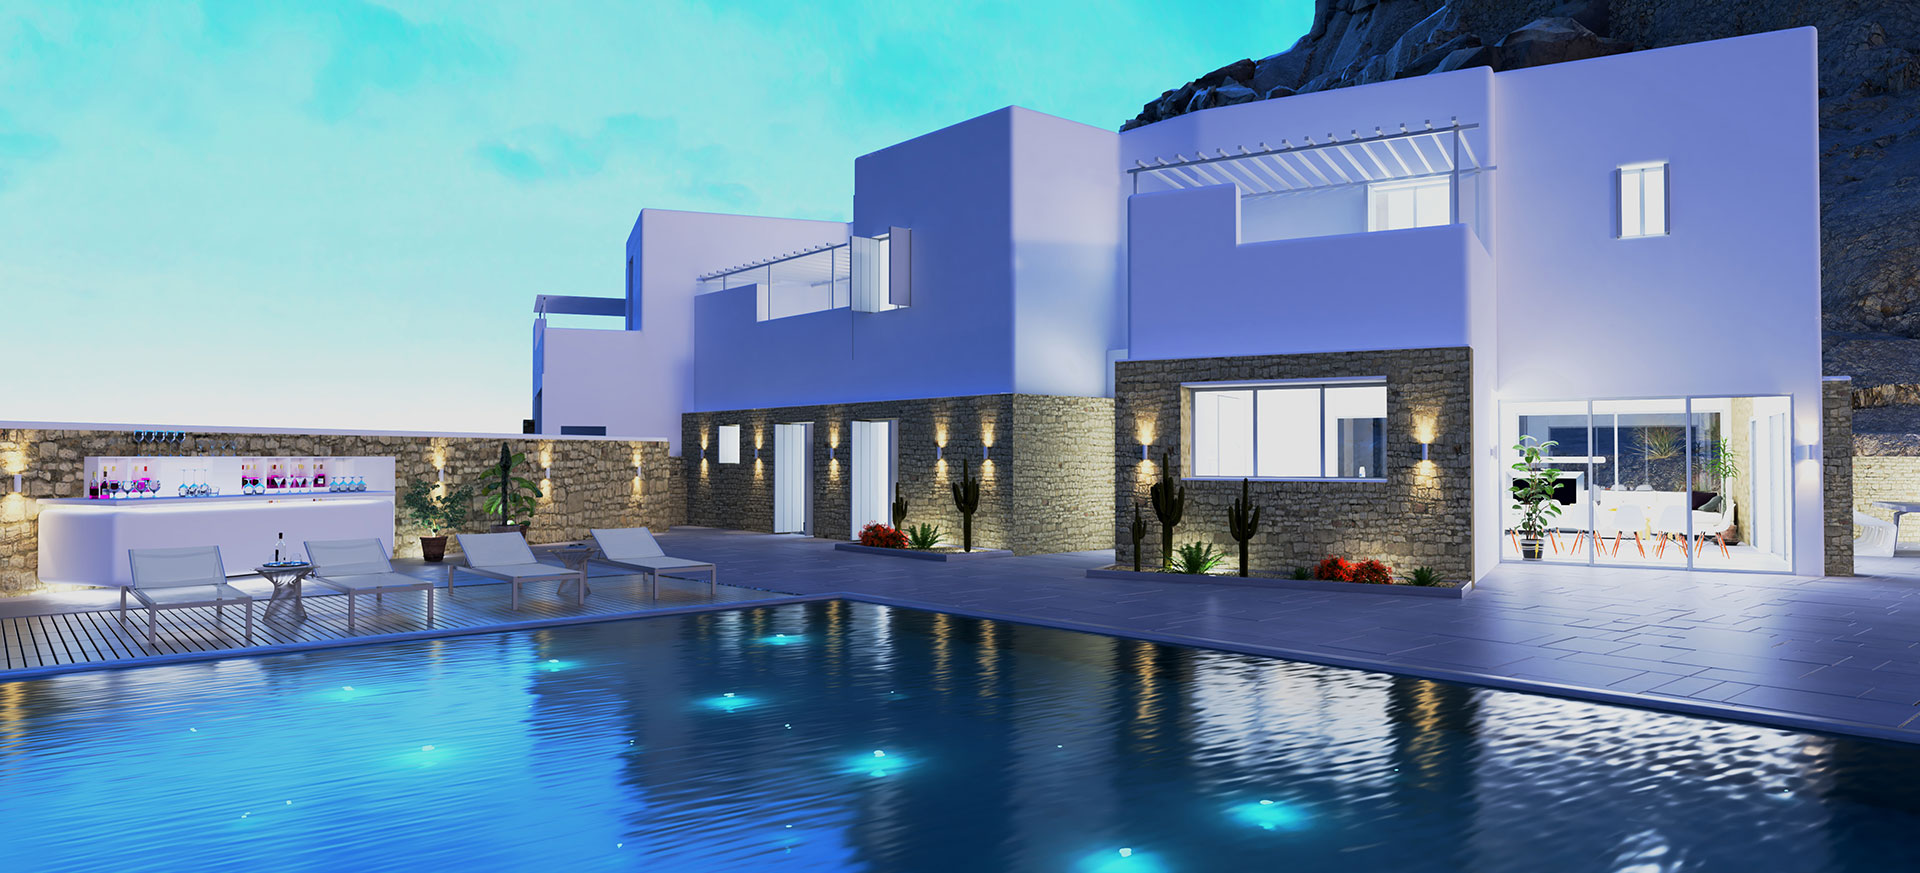 Mykonos Invest - Perspective Views